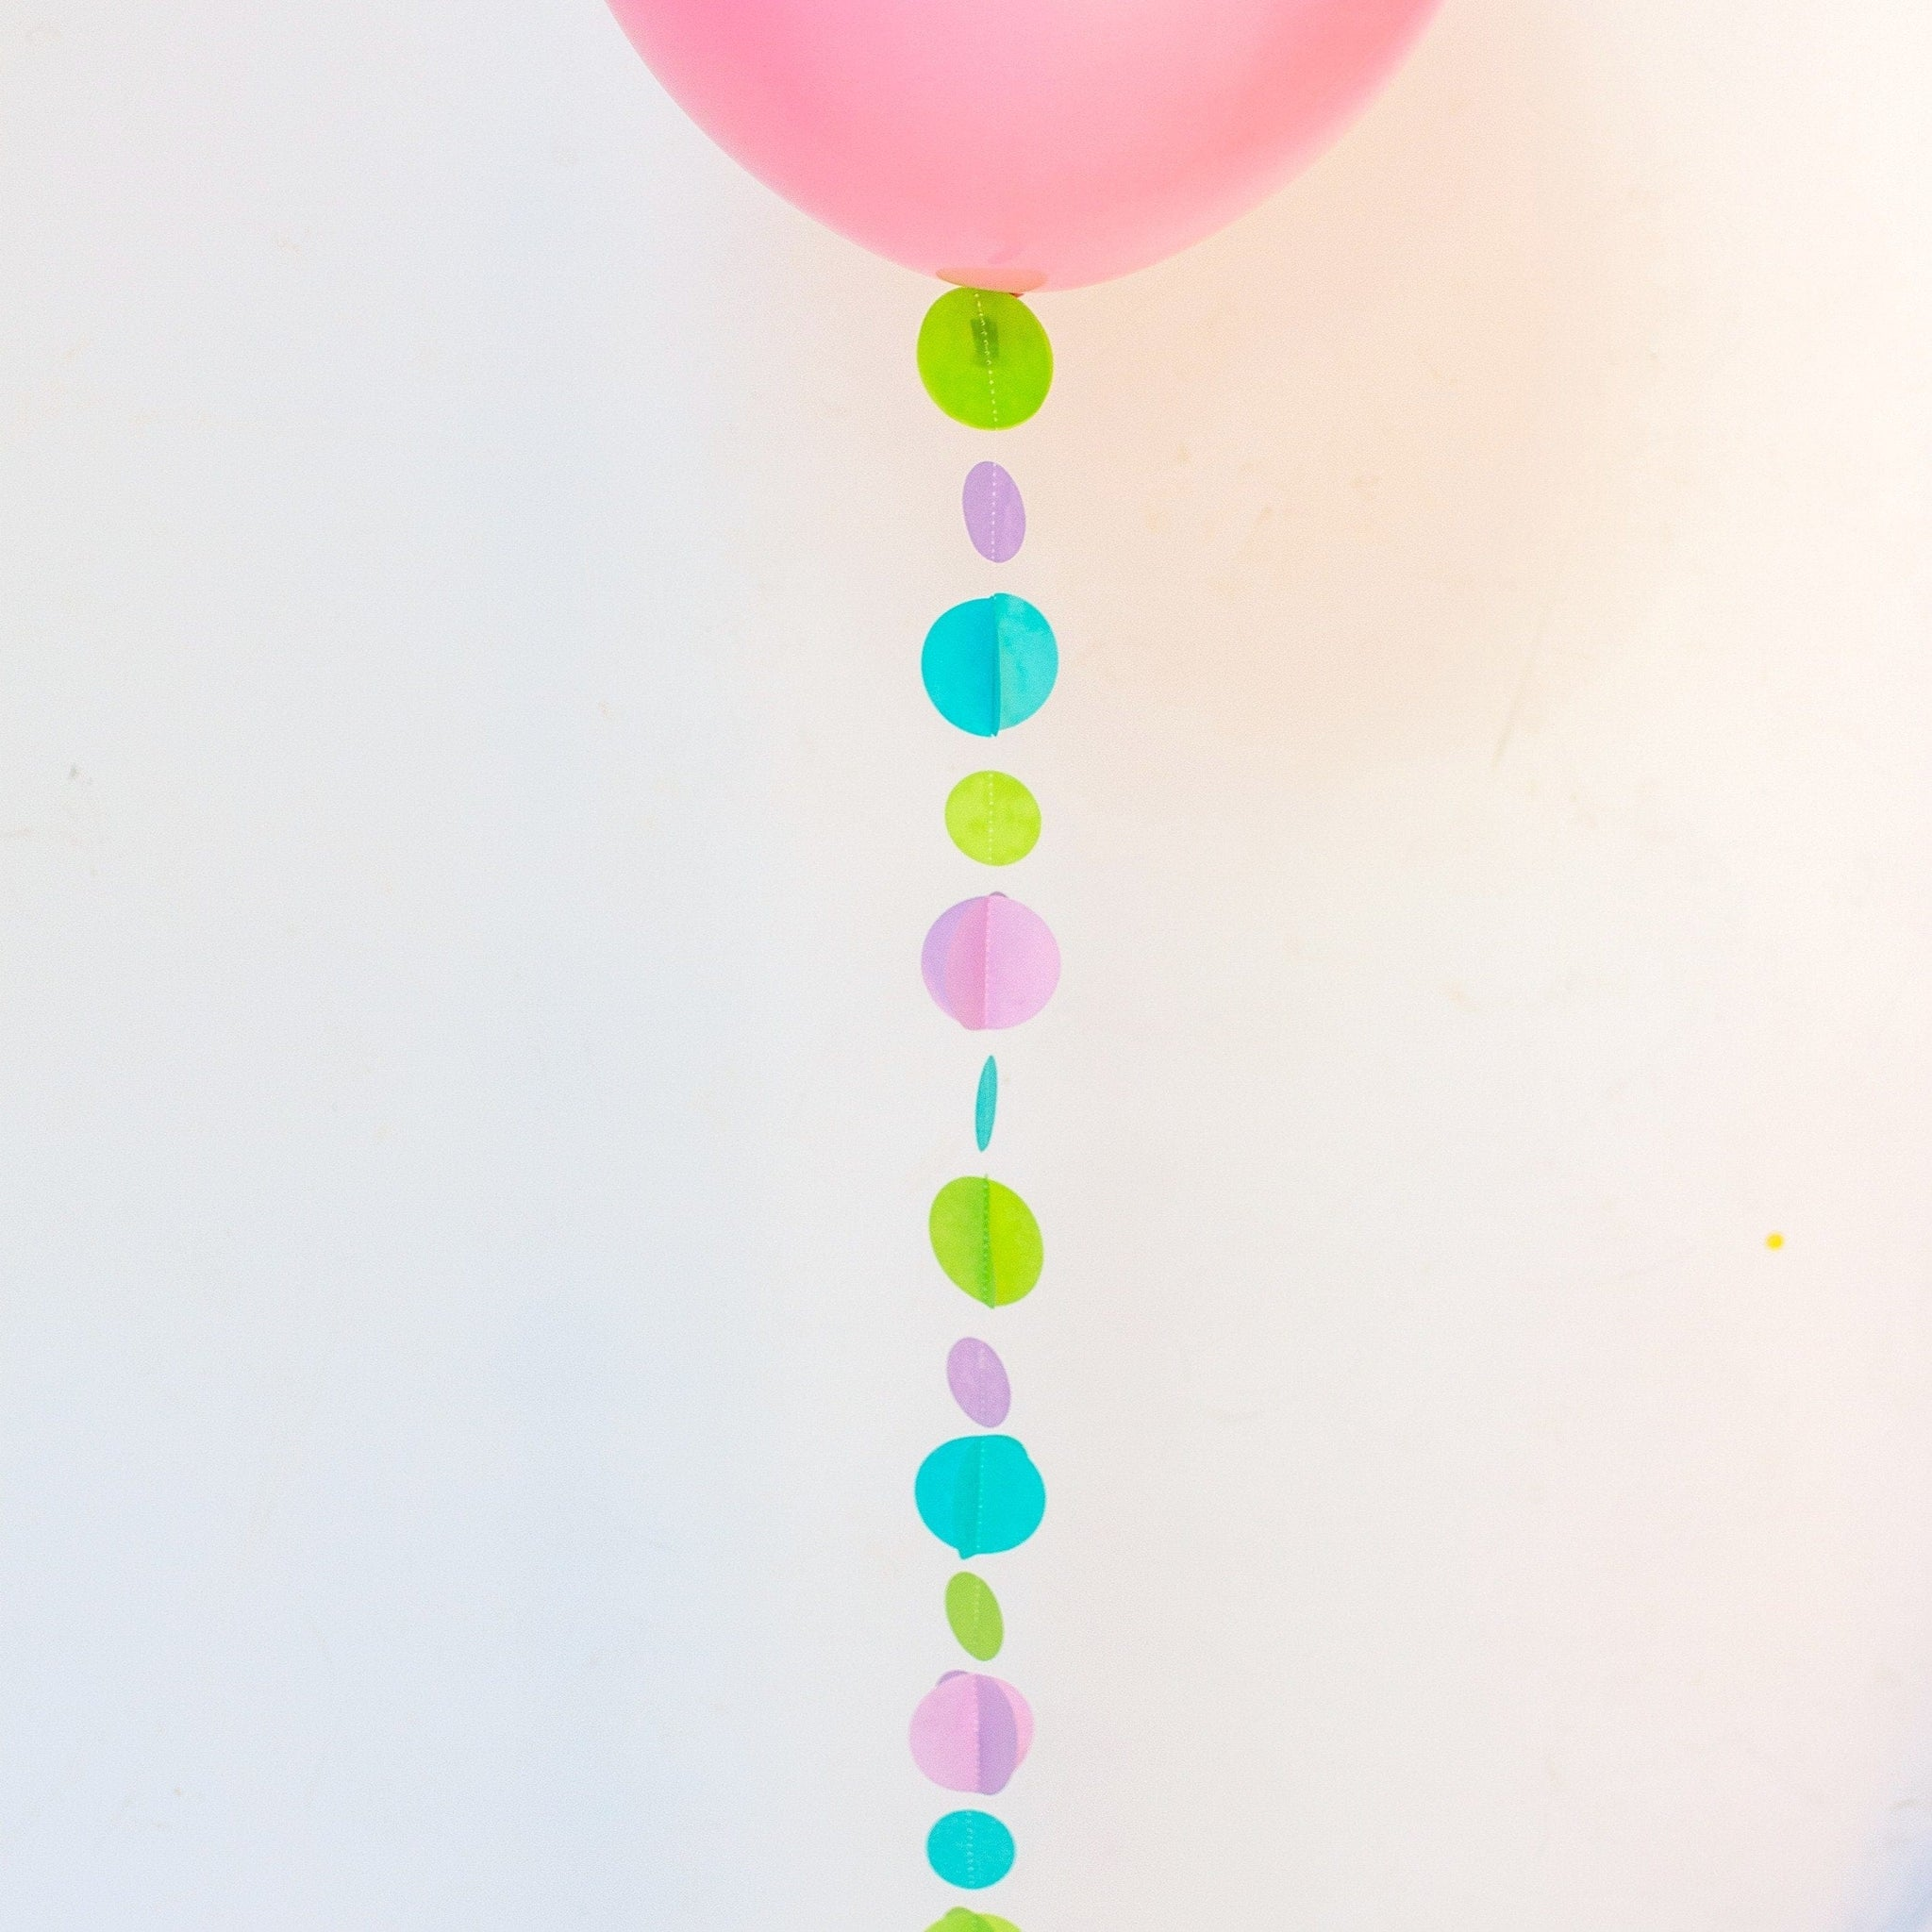 Balloon Tail Mermaid | Balloon Tail Decorations UK